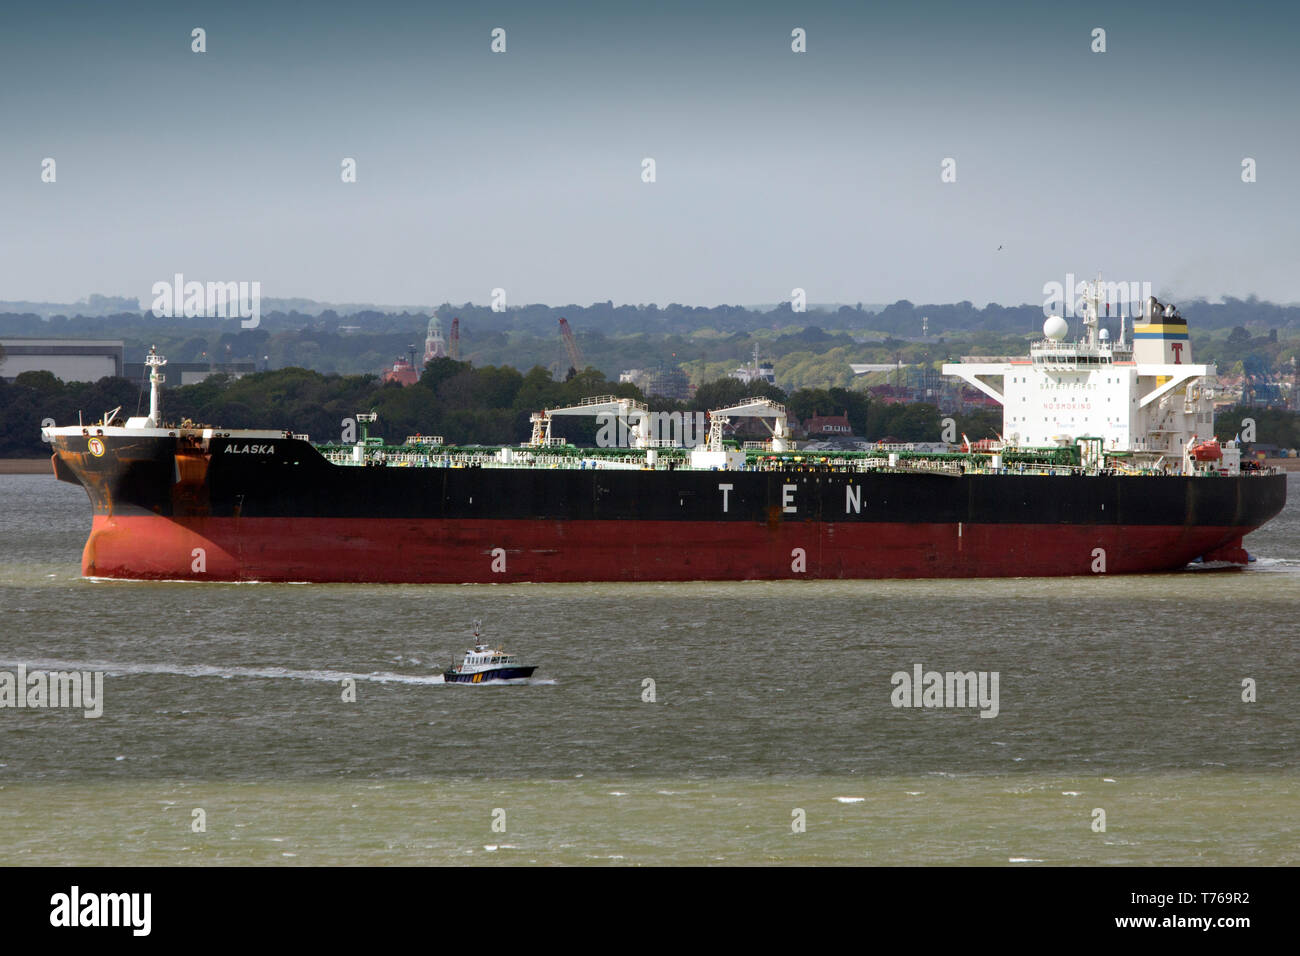 Southampton,chimiques,services,port,,remorquage,Citerne,Raffinerie,Fawley Le Solent,combustibles,modifier,mondial,assistance,remorquage,réchauffement remorqueur,carburant,essence,etat,,flag Photo Stock